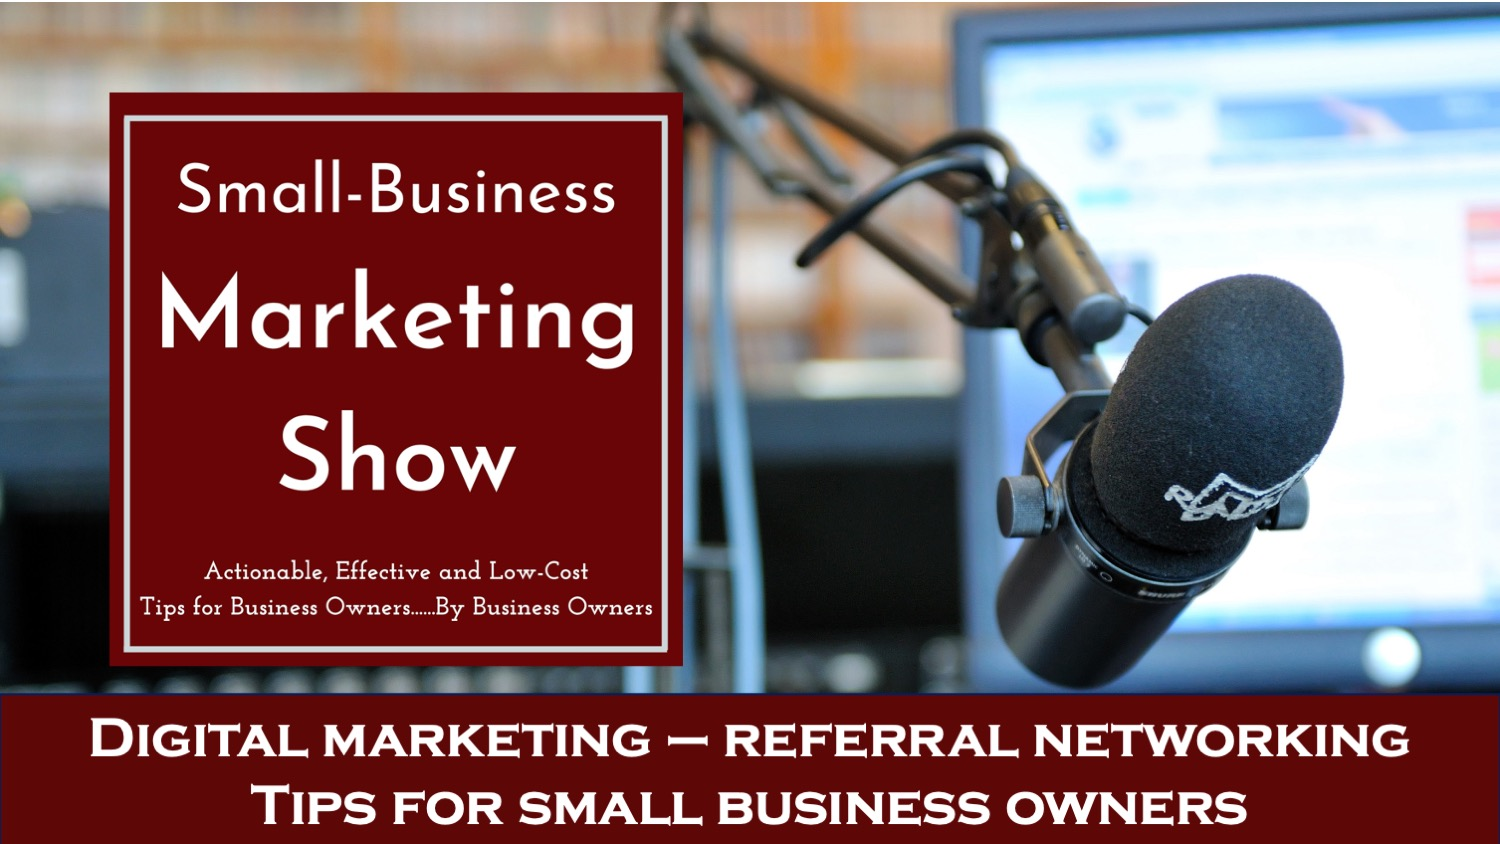 Small Business Marketing Show